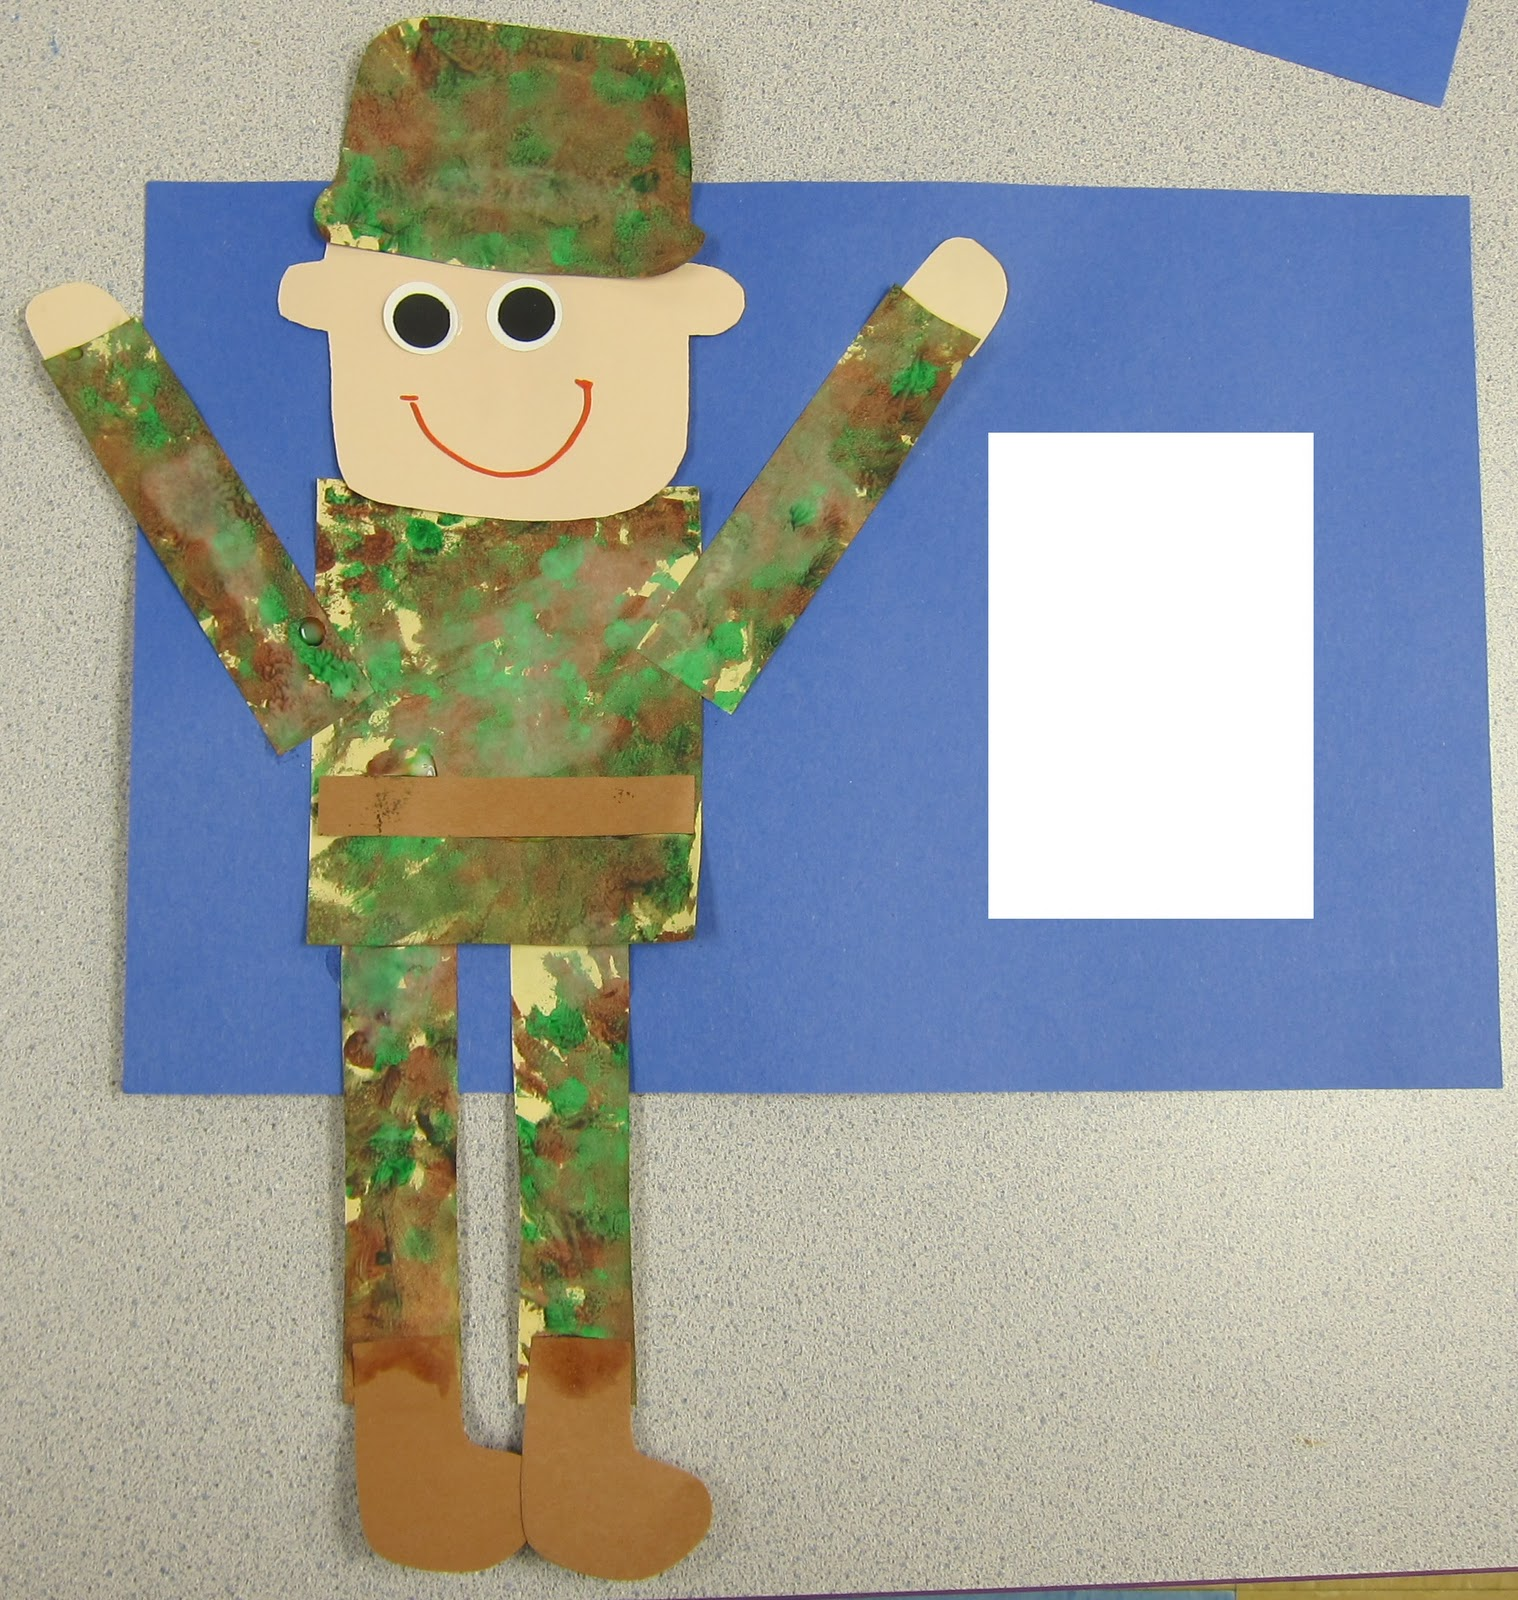 mrs karen 39 s preschool ideas veteran 39 s day 2011